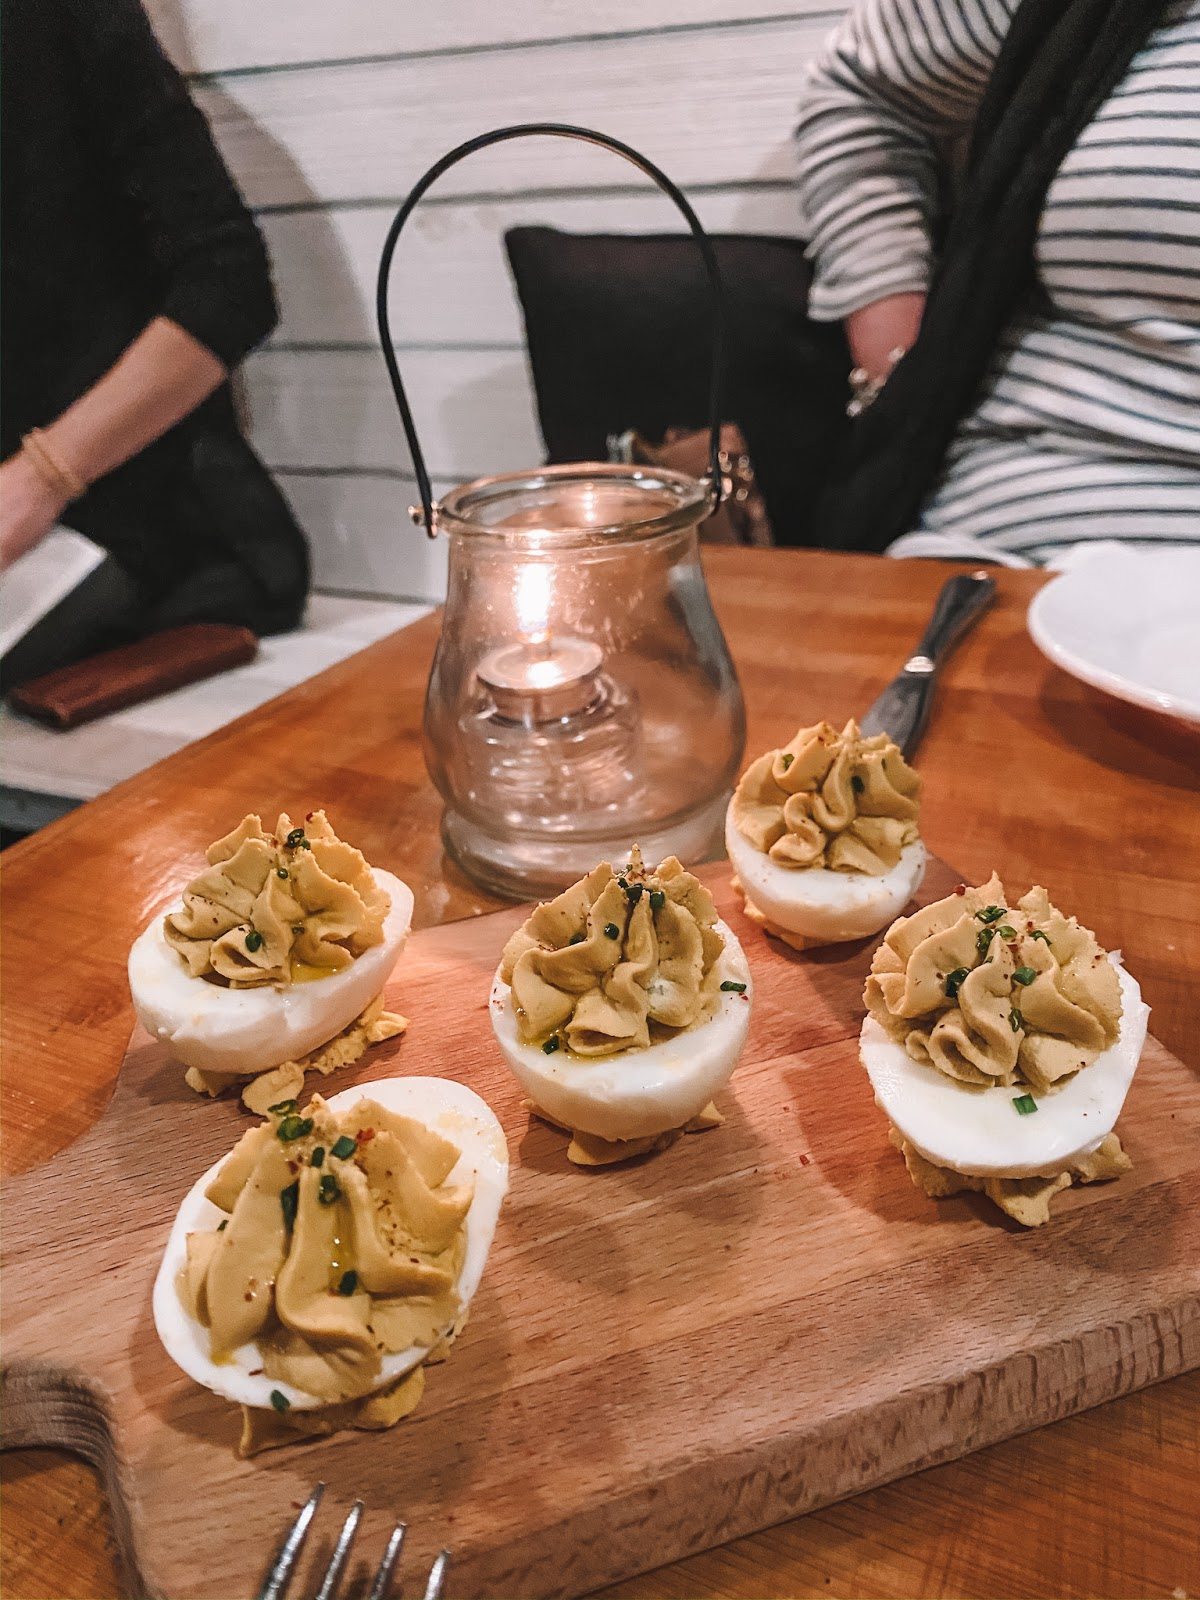 travel blogger Amanda's OK recommends the deviled eggs at The Heritage Table in Frisco, Texas